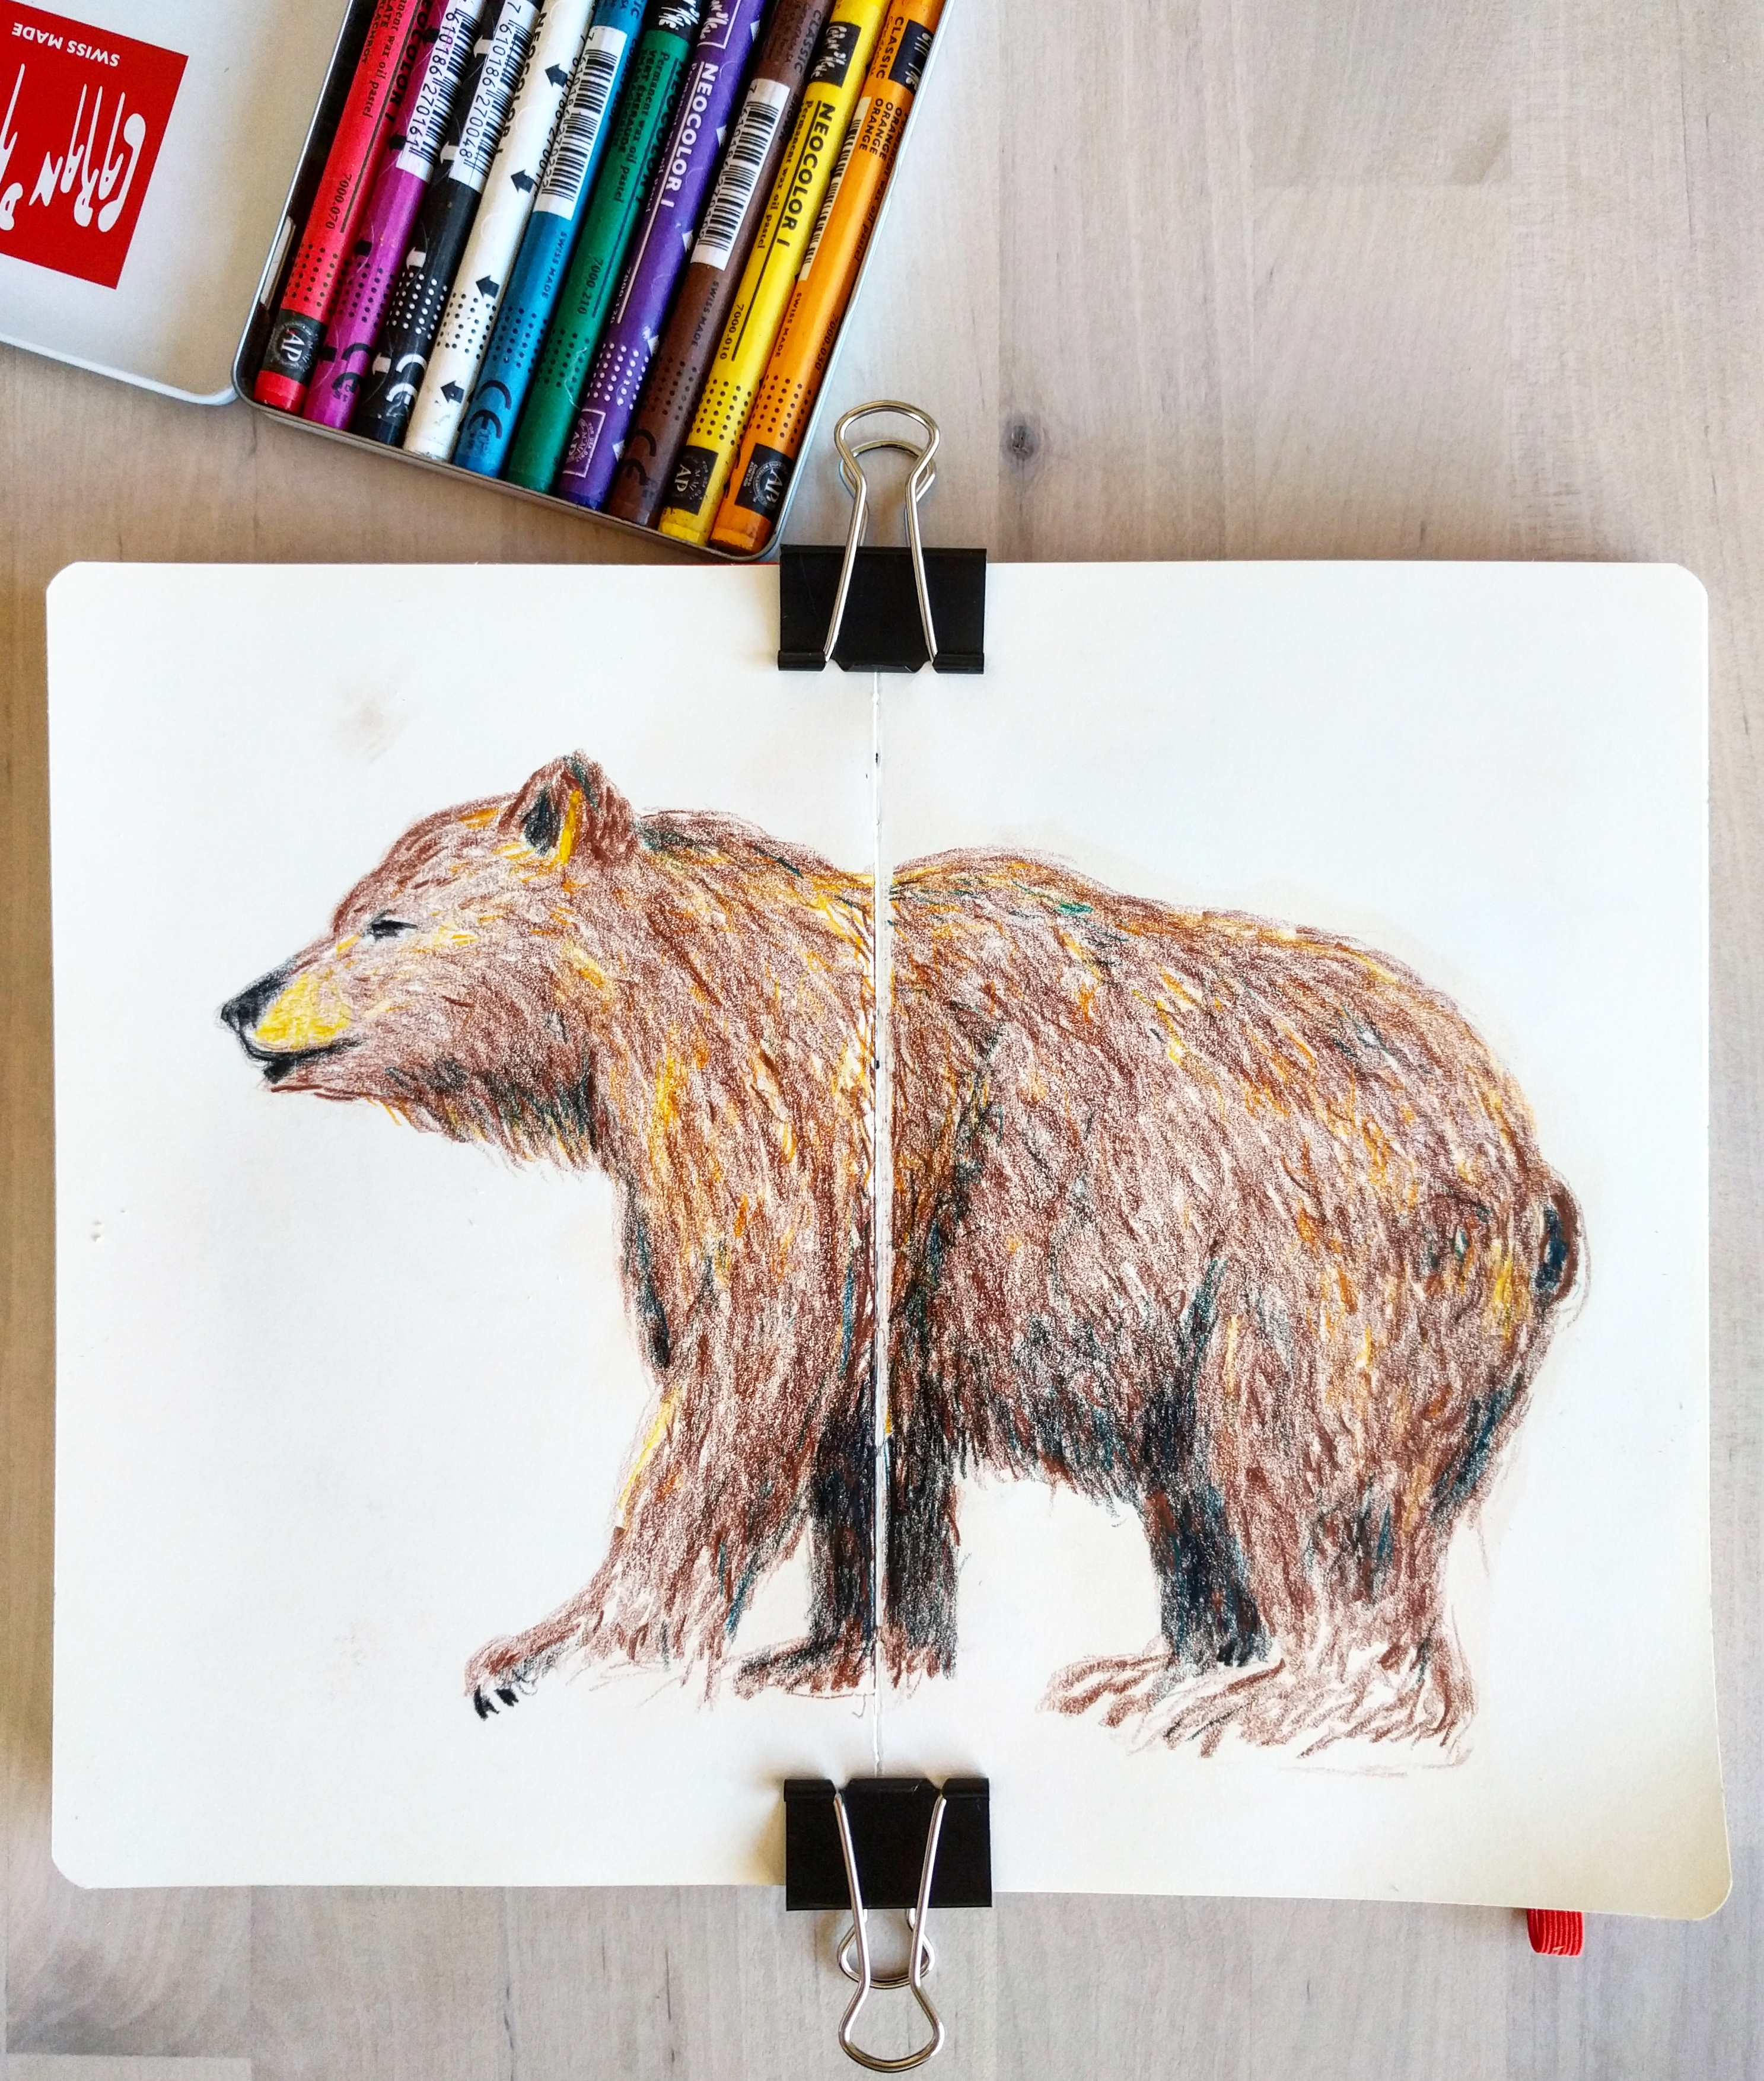 Bear with crayons